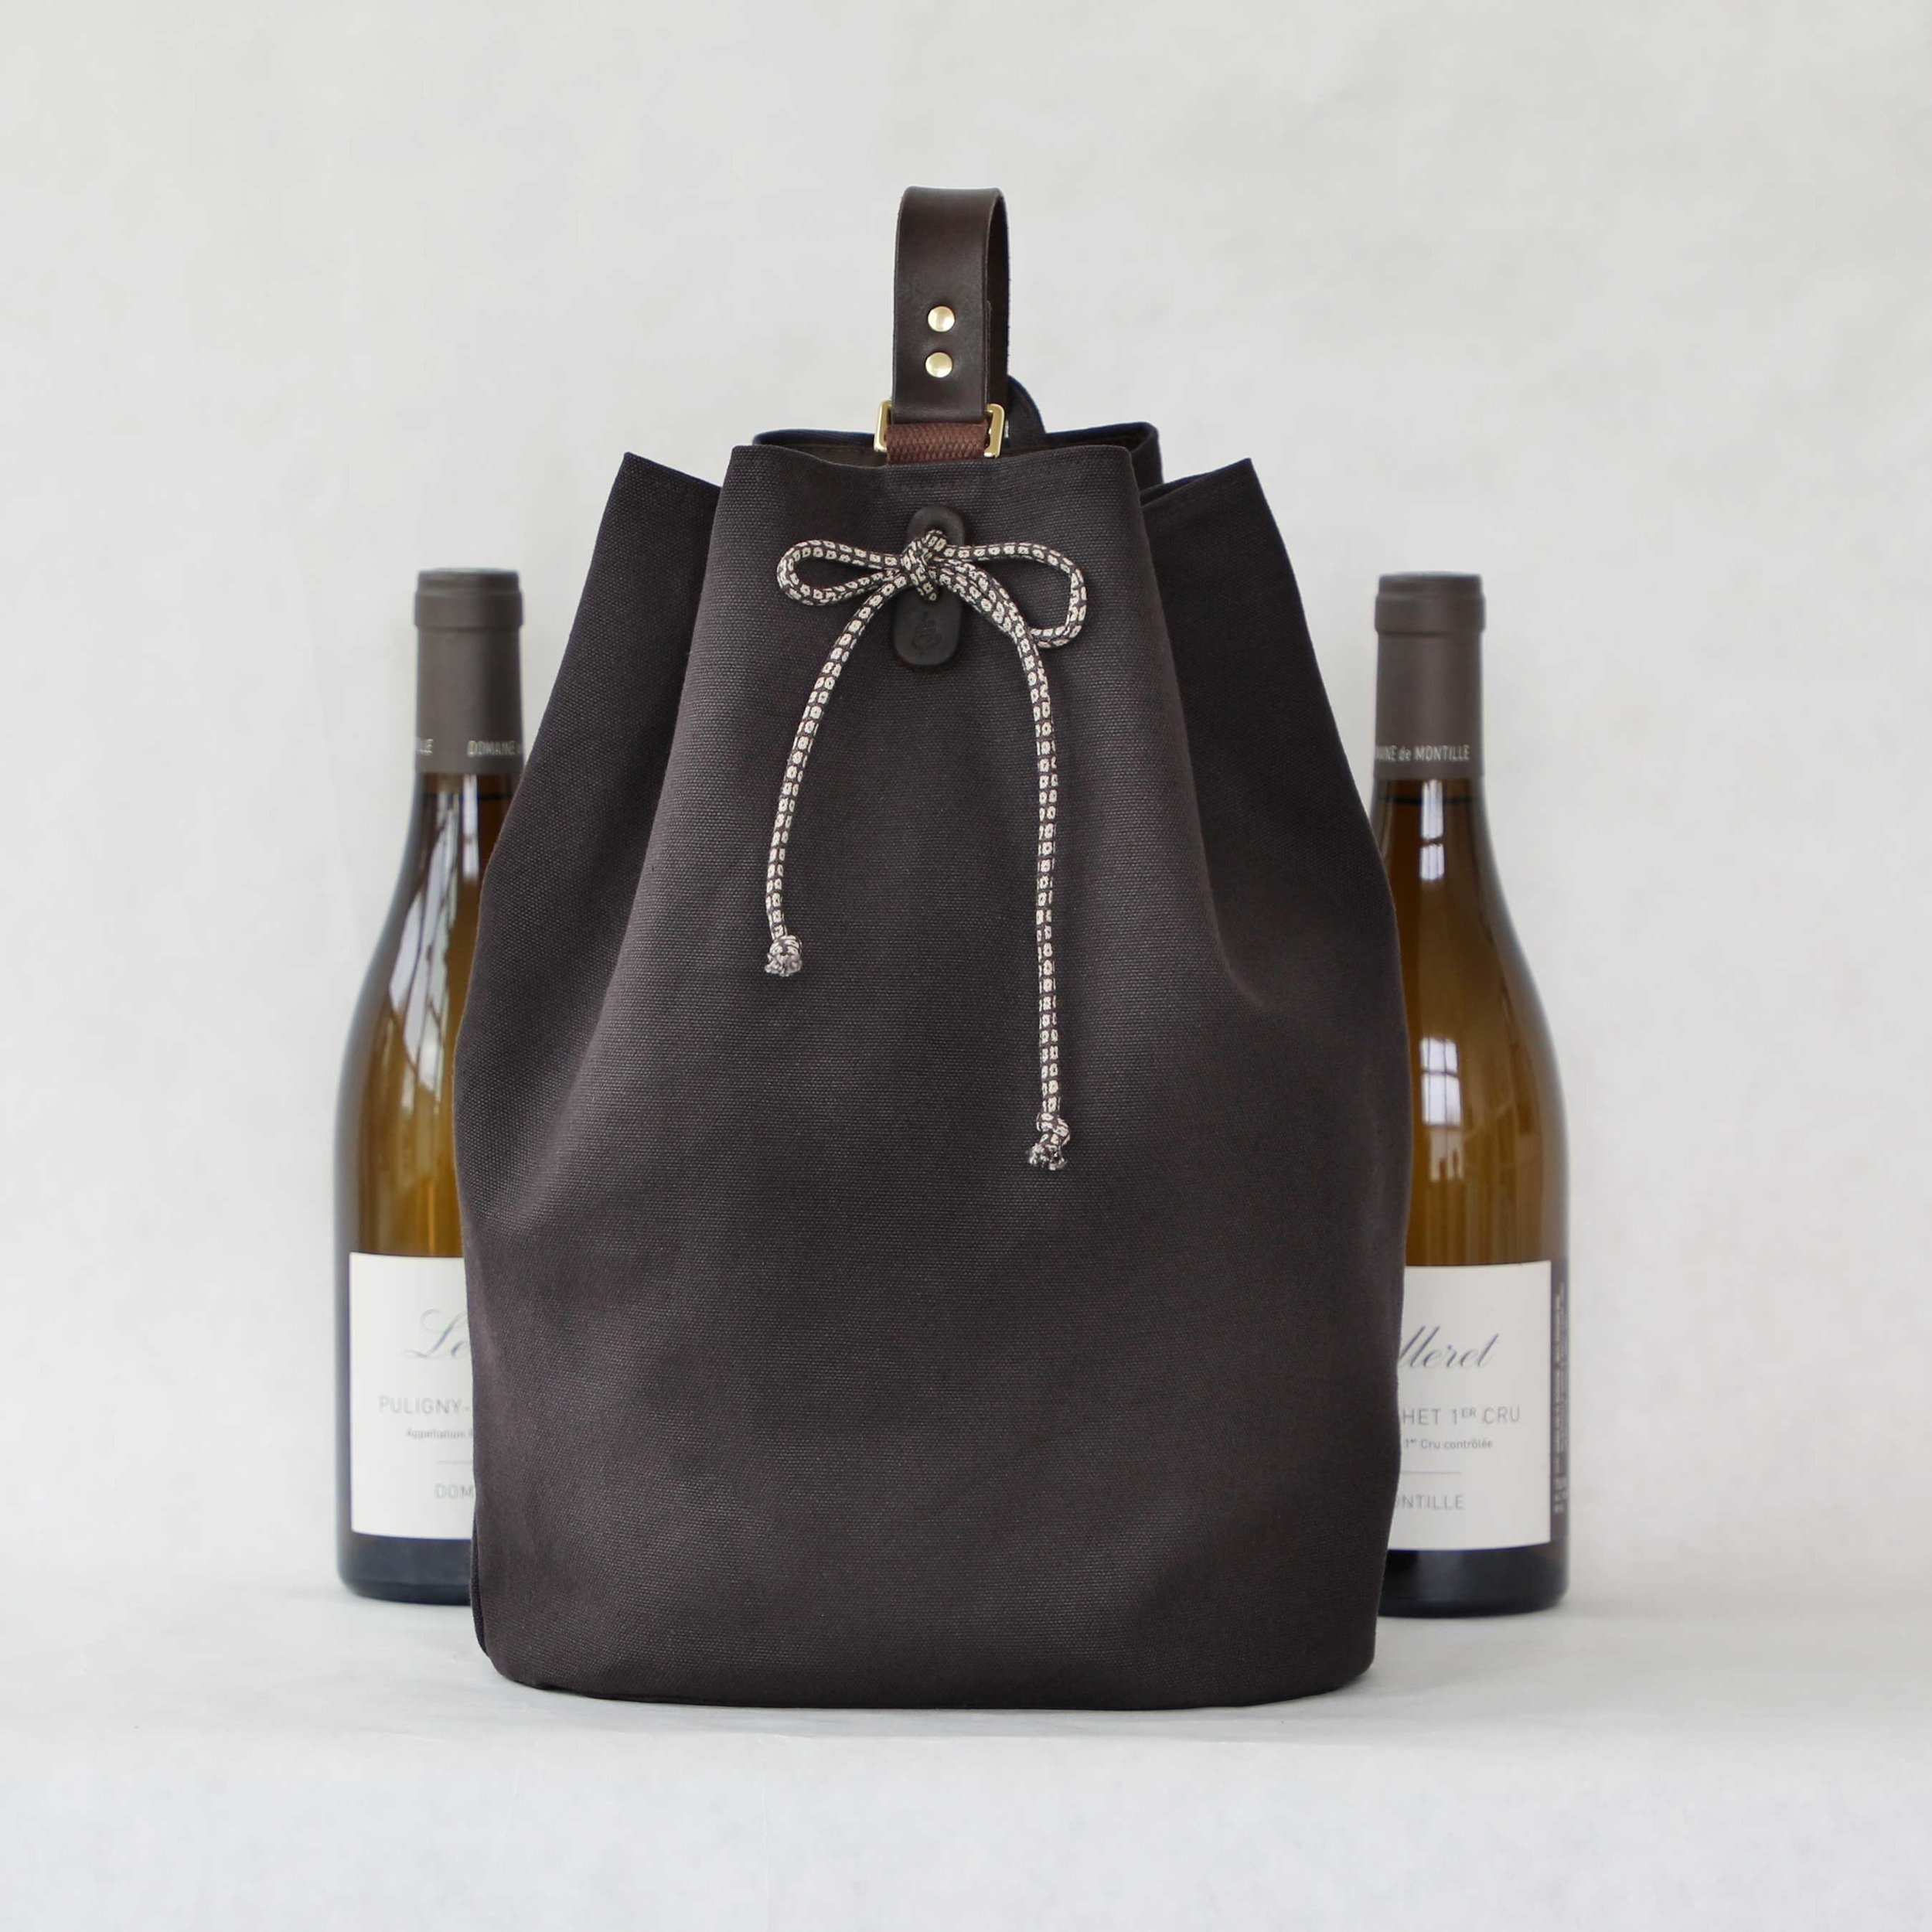 Larkspur - 2 Bottle Wine Tote $128